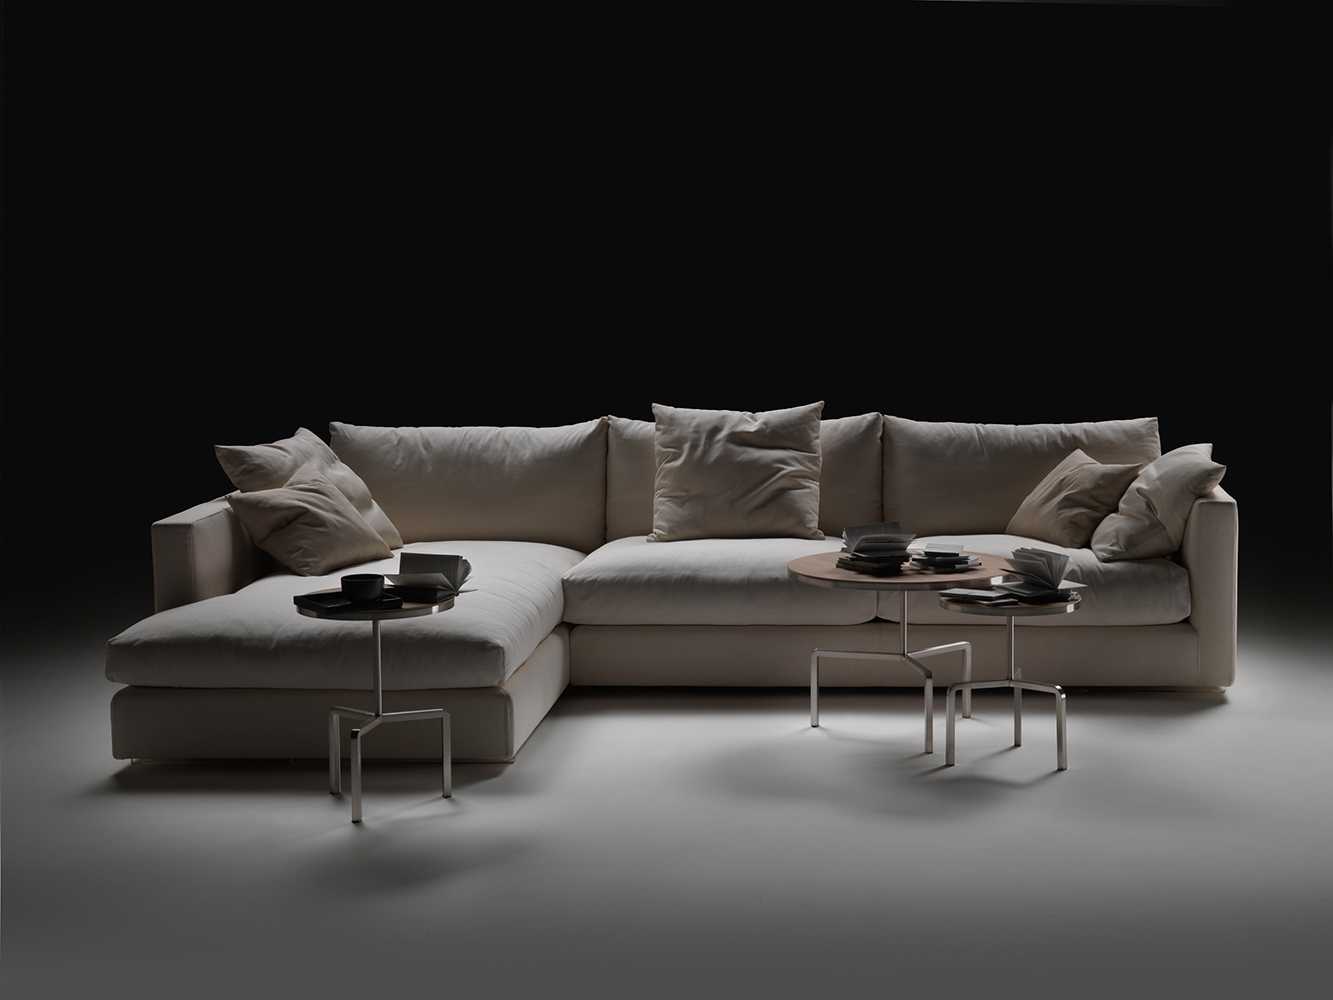 down filled leather sectional sofa 24 salon namestaja flexform magnum | buy from campbell watson